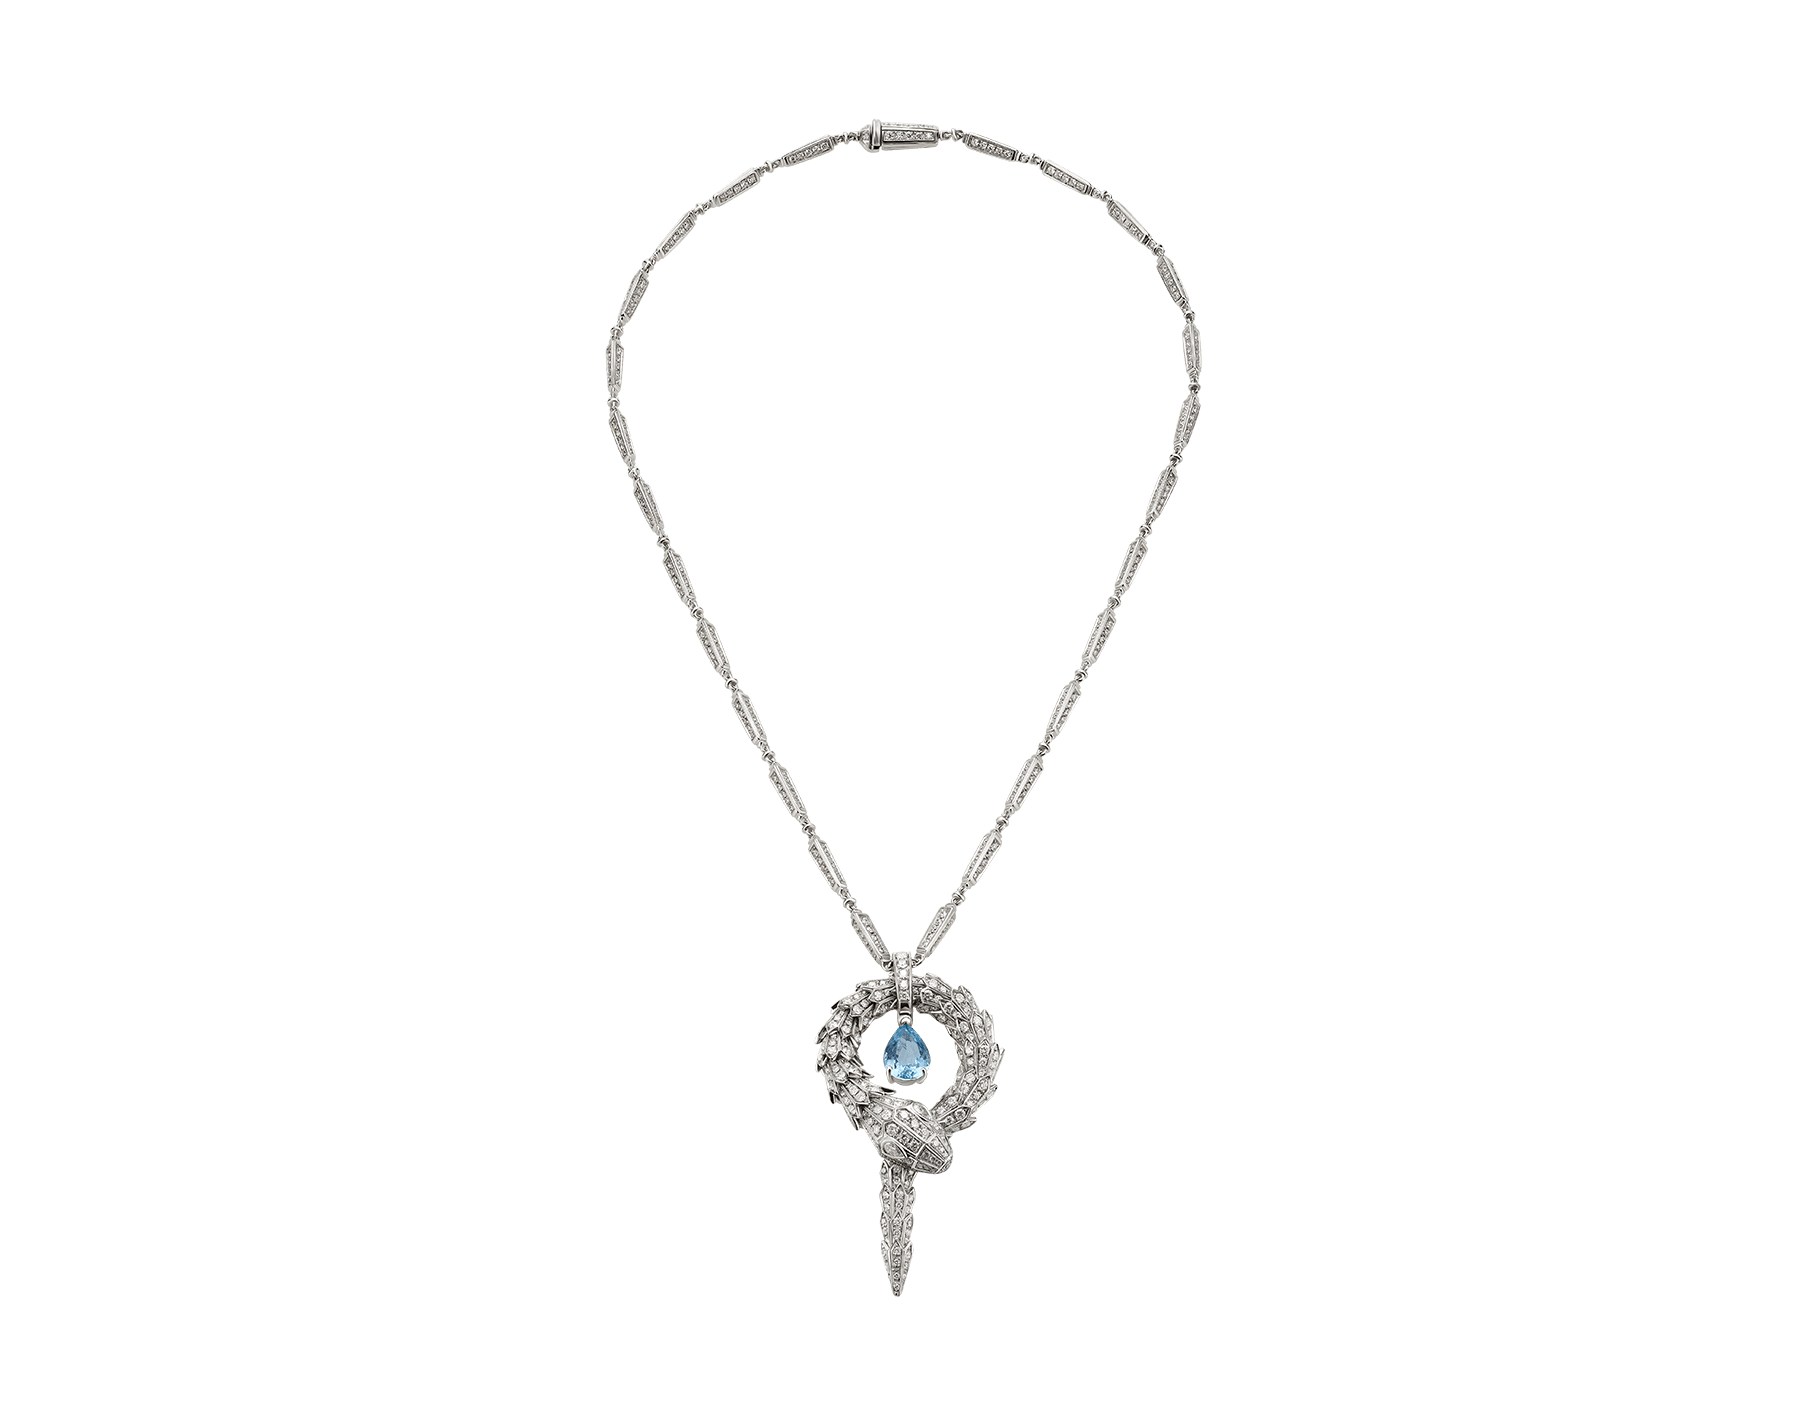 Serpenti small pendant in 18 kt white gold with aquamarine and pavé diamonds. 354090 image 1